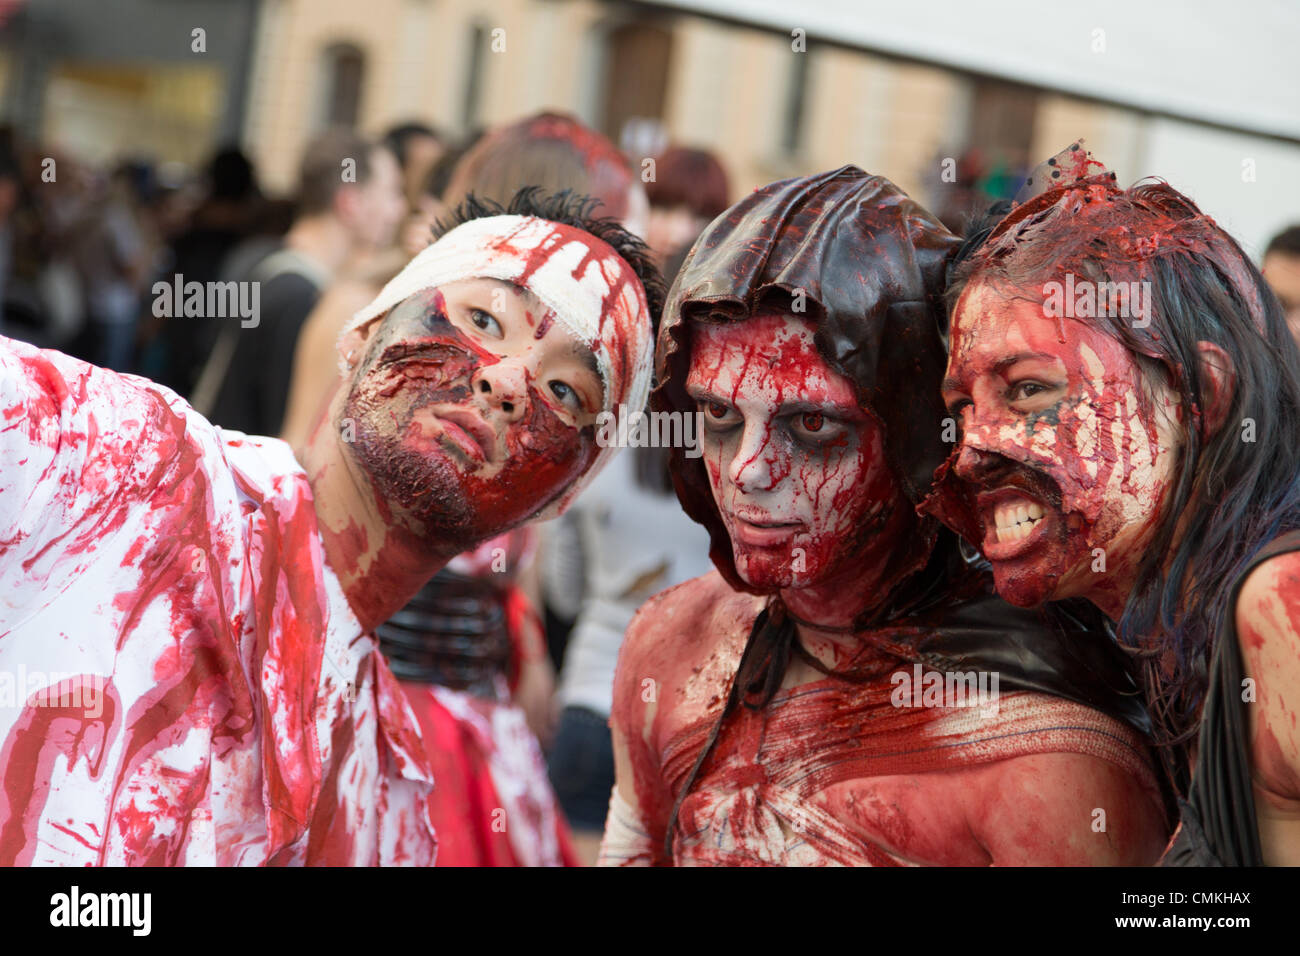 Sao Paulo, Brazil. 2nd Nov, 2013. The zombies are seen during the Sao Paulo Zombie Walk in Central Zone of the city. Stock Photo